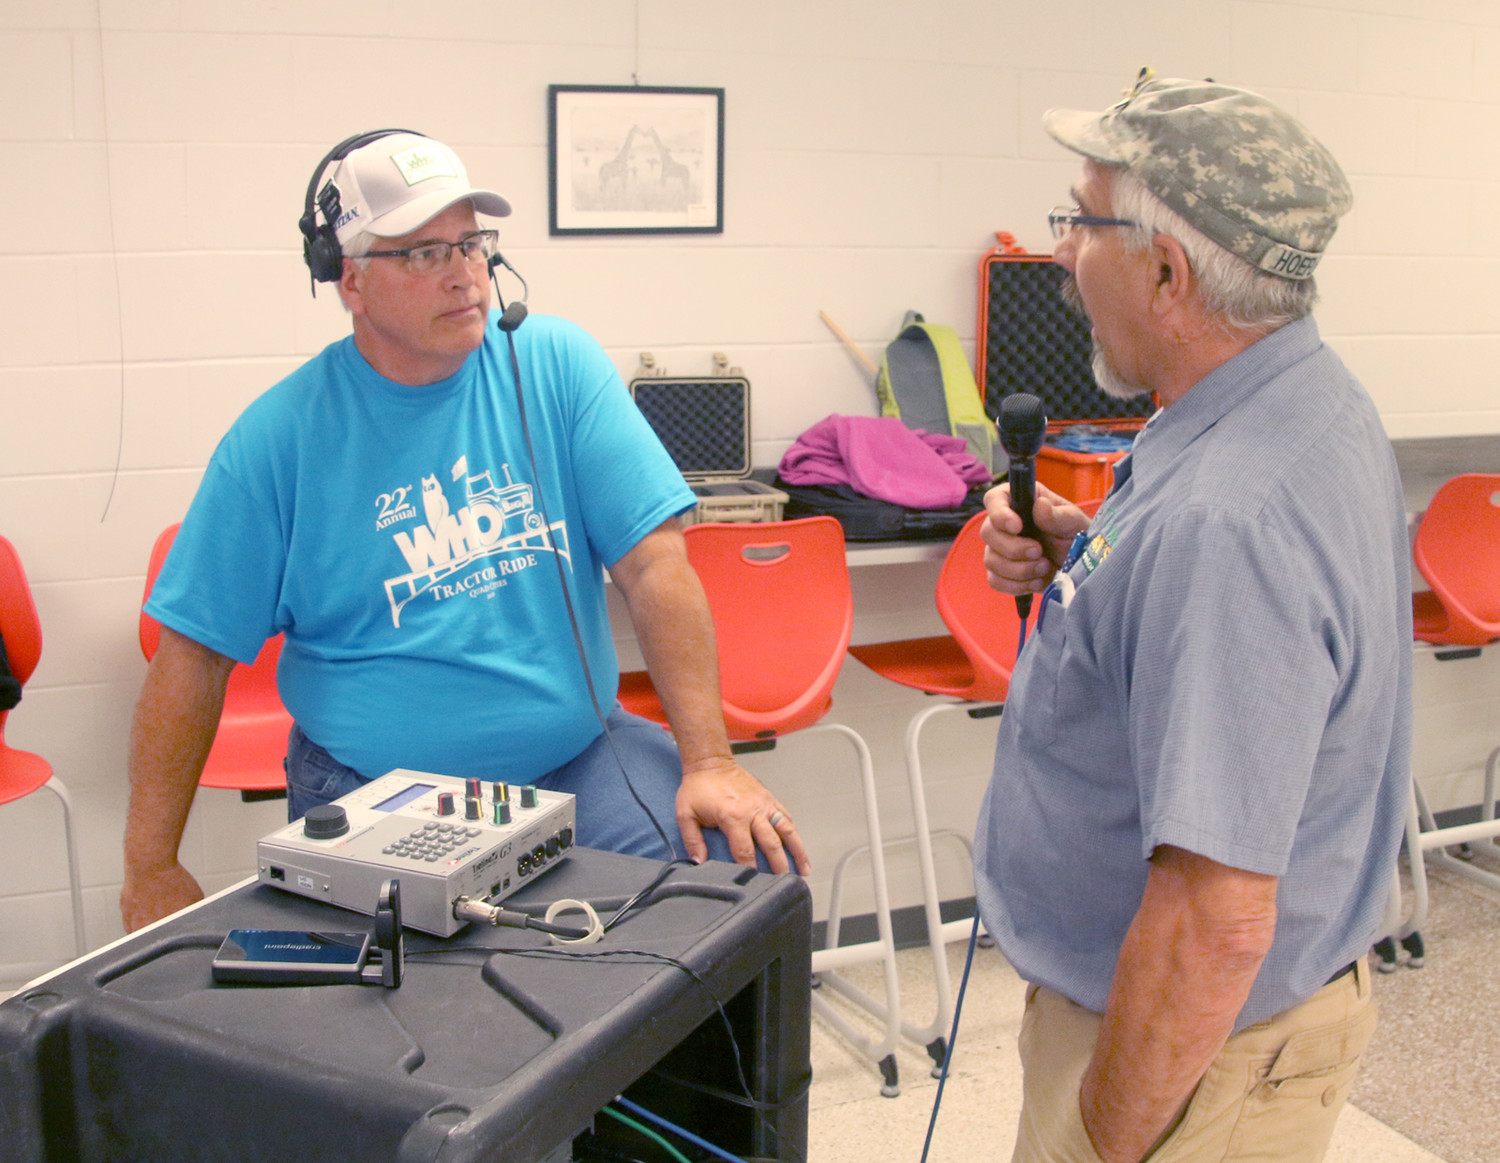 Bob Quinn, of WHO, interviews Tractor Ride sponsor Gary Hoefling, who owns Roberts Carburetor Repair in Spencer, at the North Scott High School cafeteria.